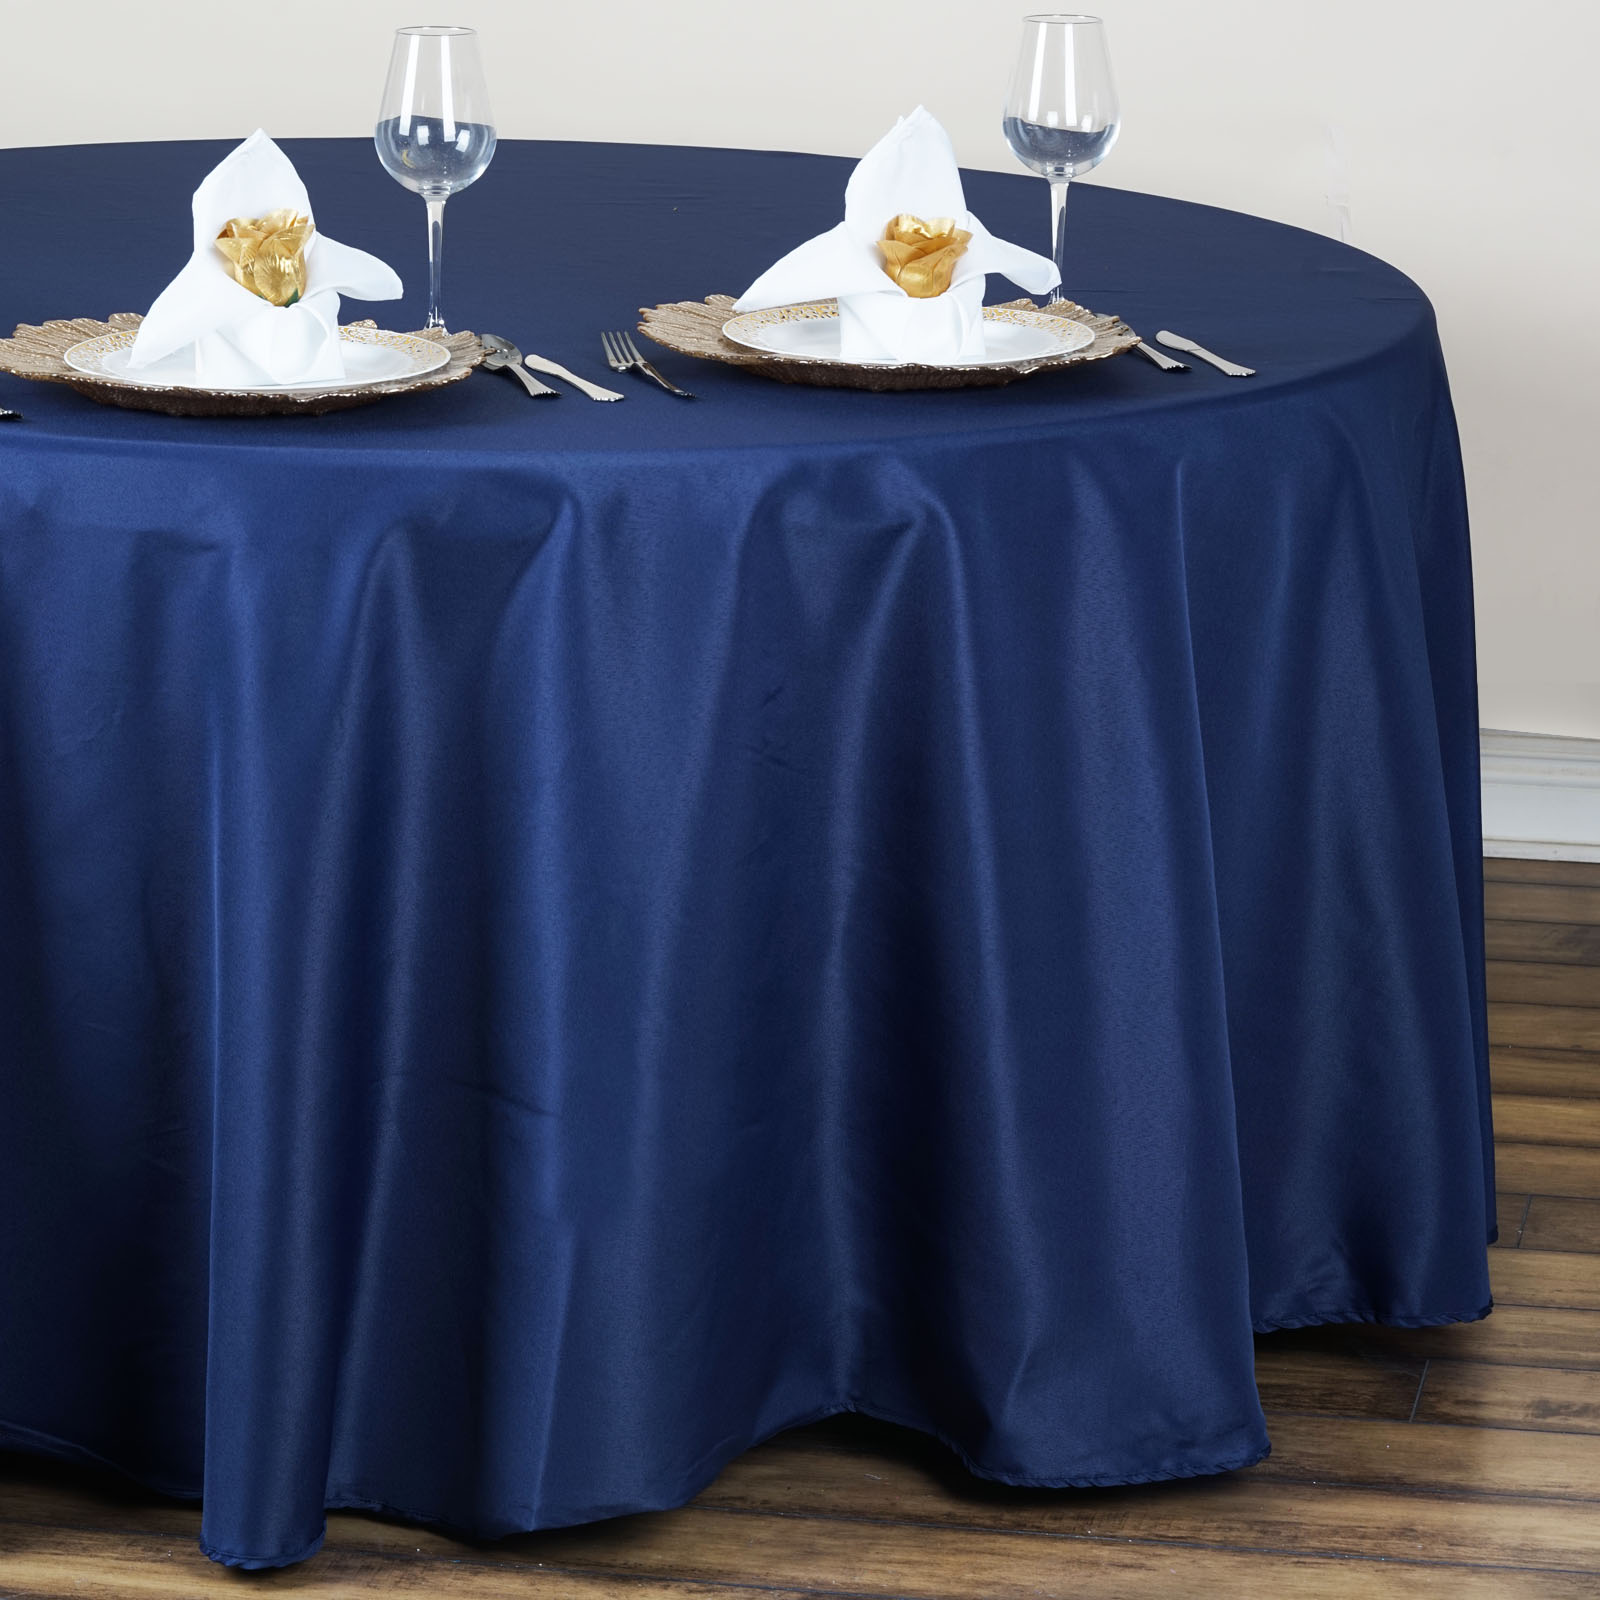 120 round polyester tablecloth ebay for 120 table cloth